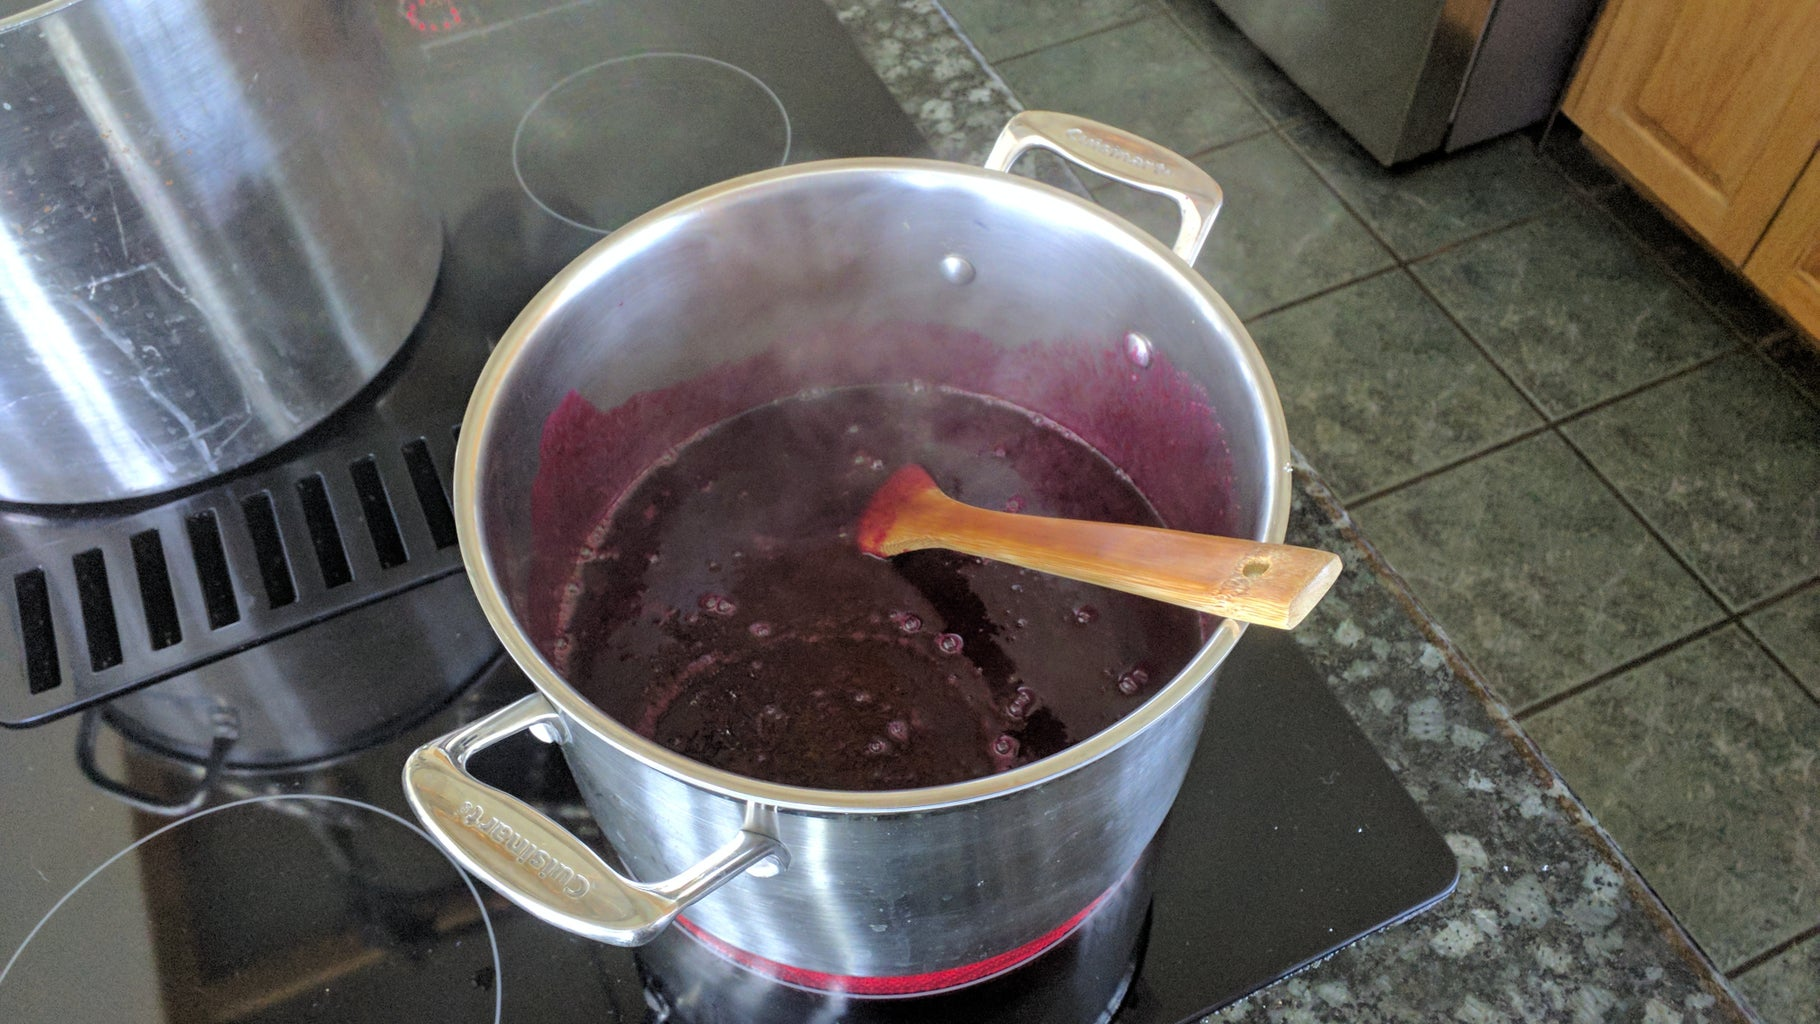 Cooking the Jelly